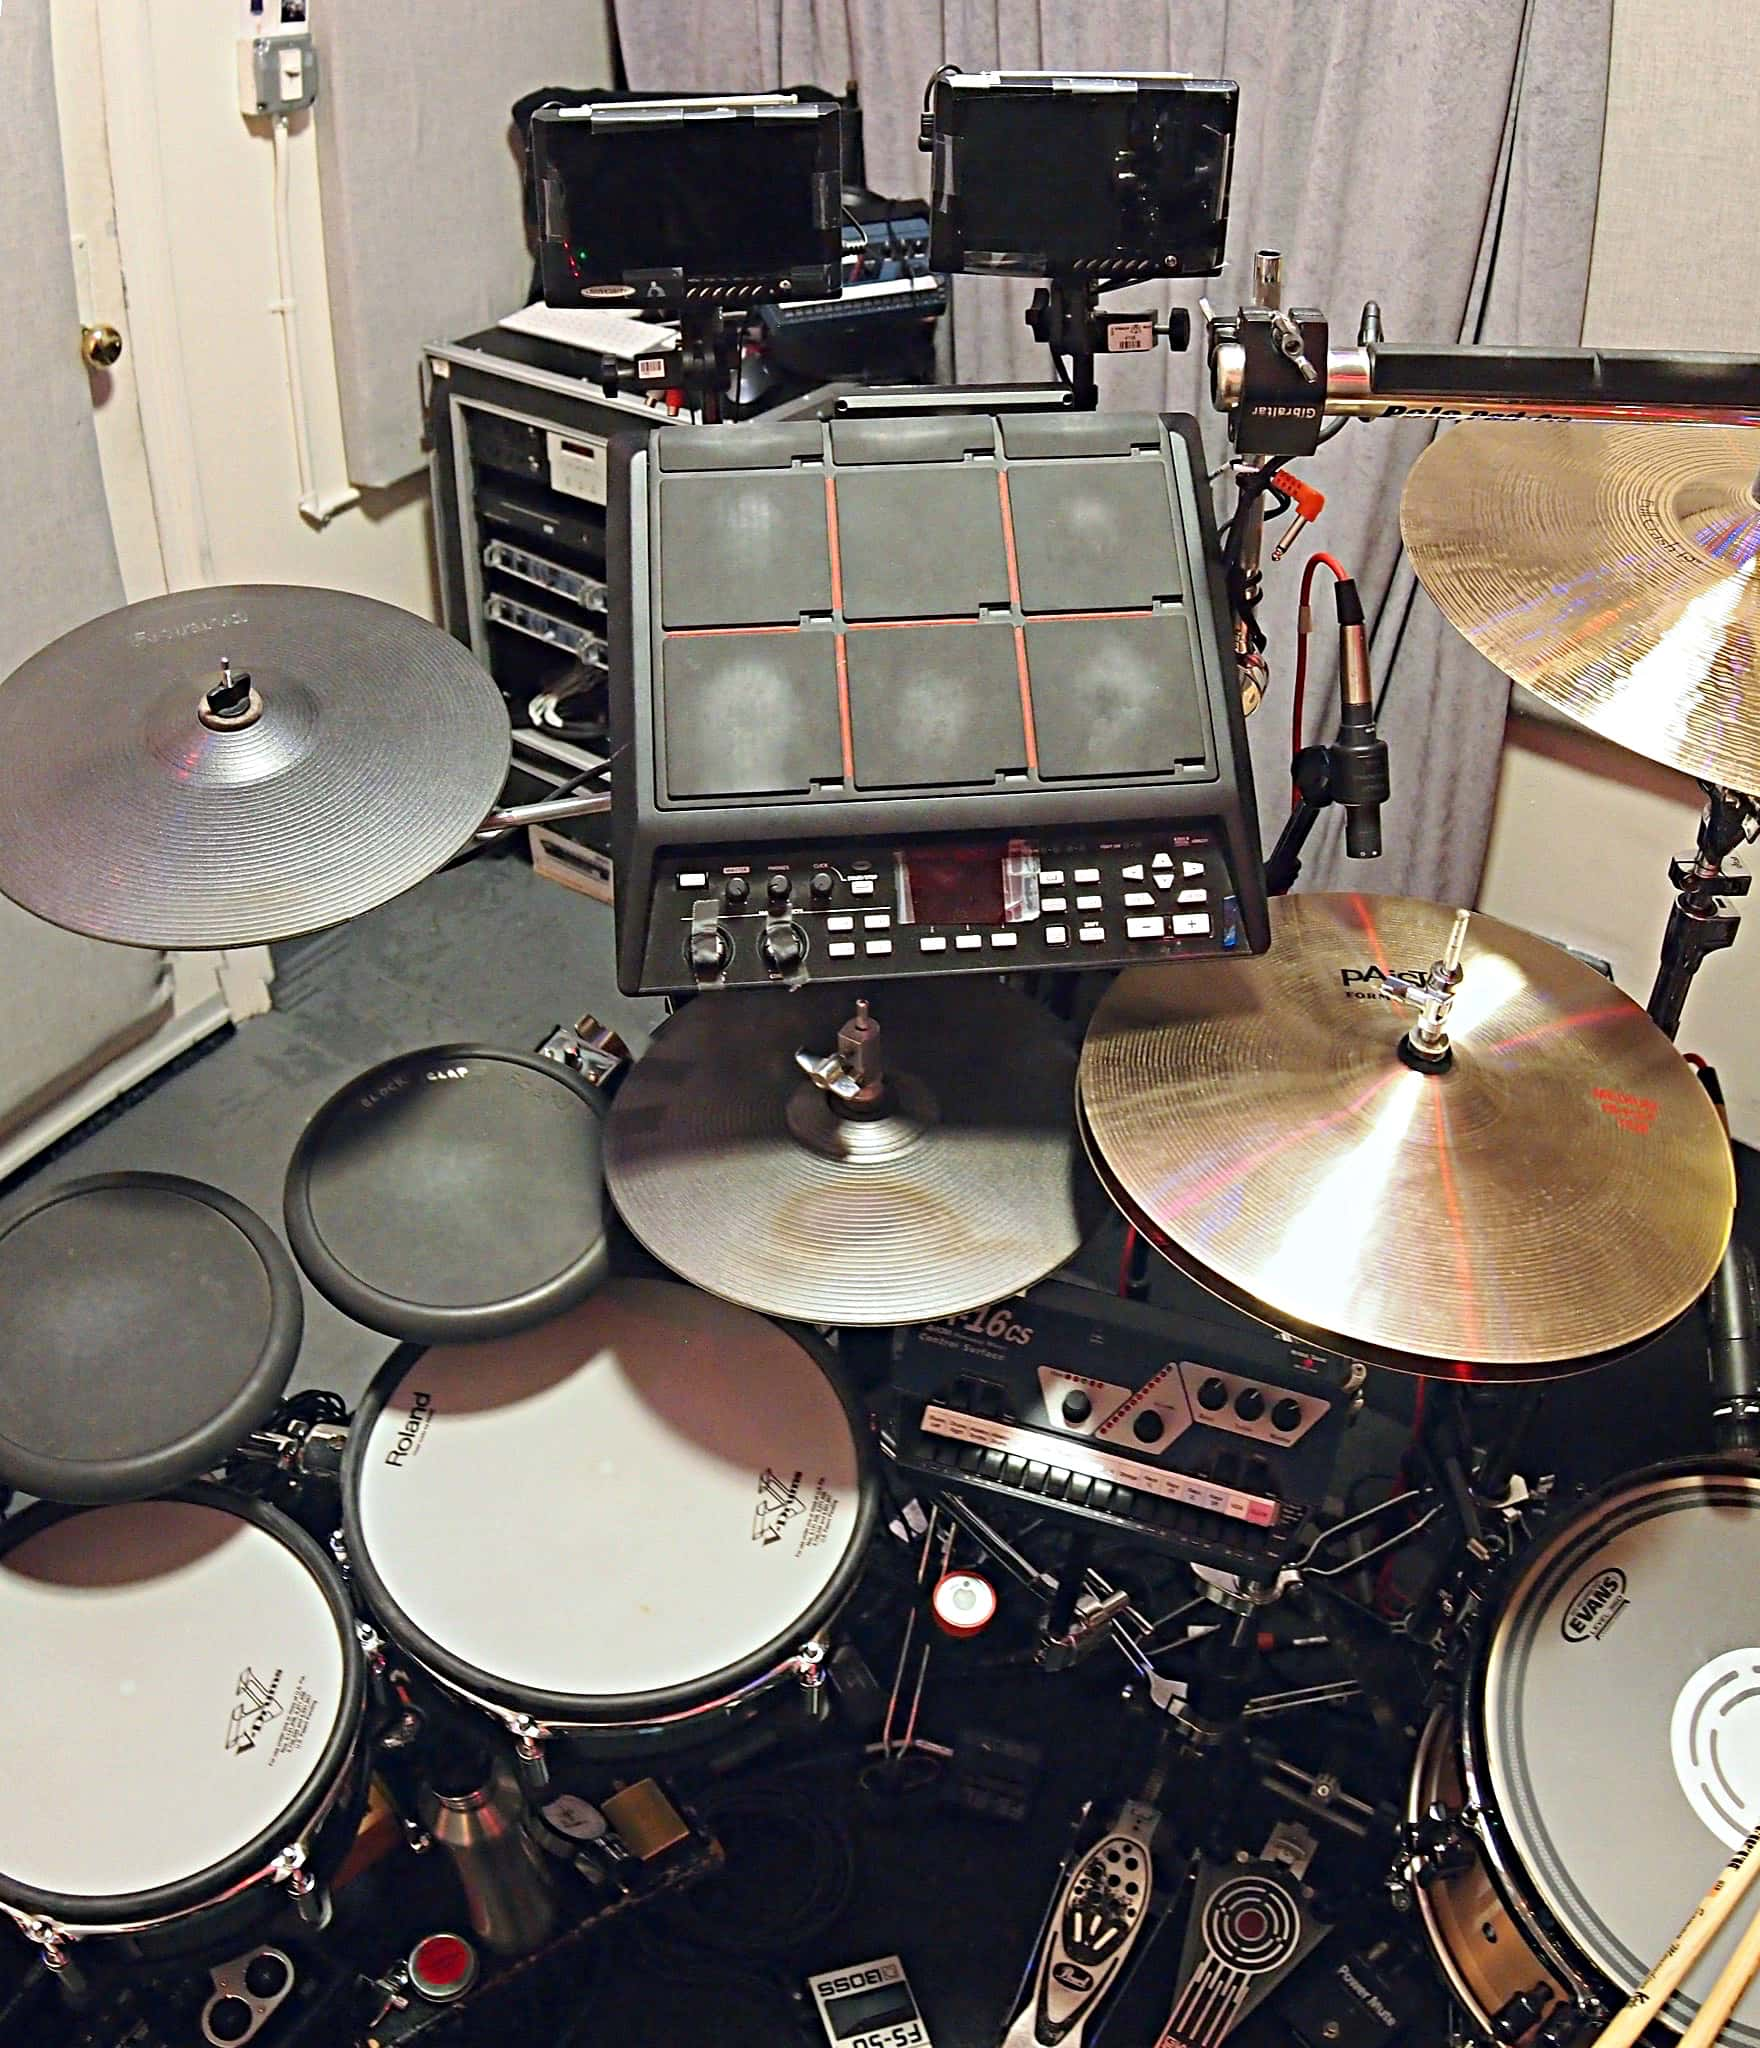 Sammy Merendino's setup for the Broadway production of Kinky Boots at the Al Hirschfeld Theatre.